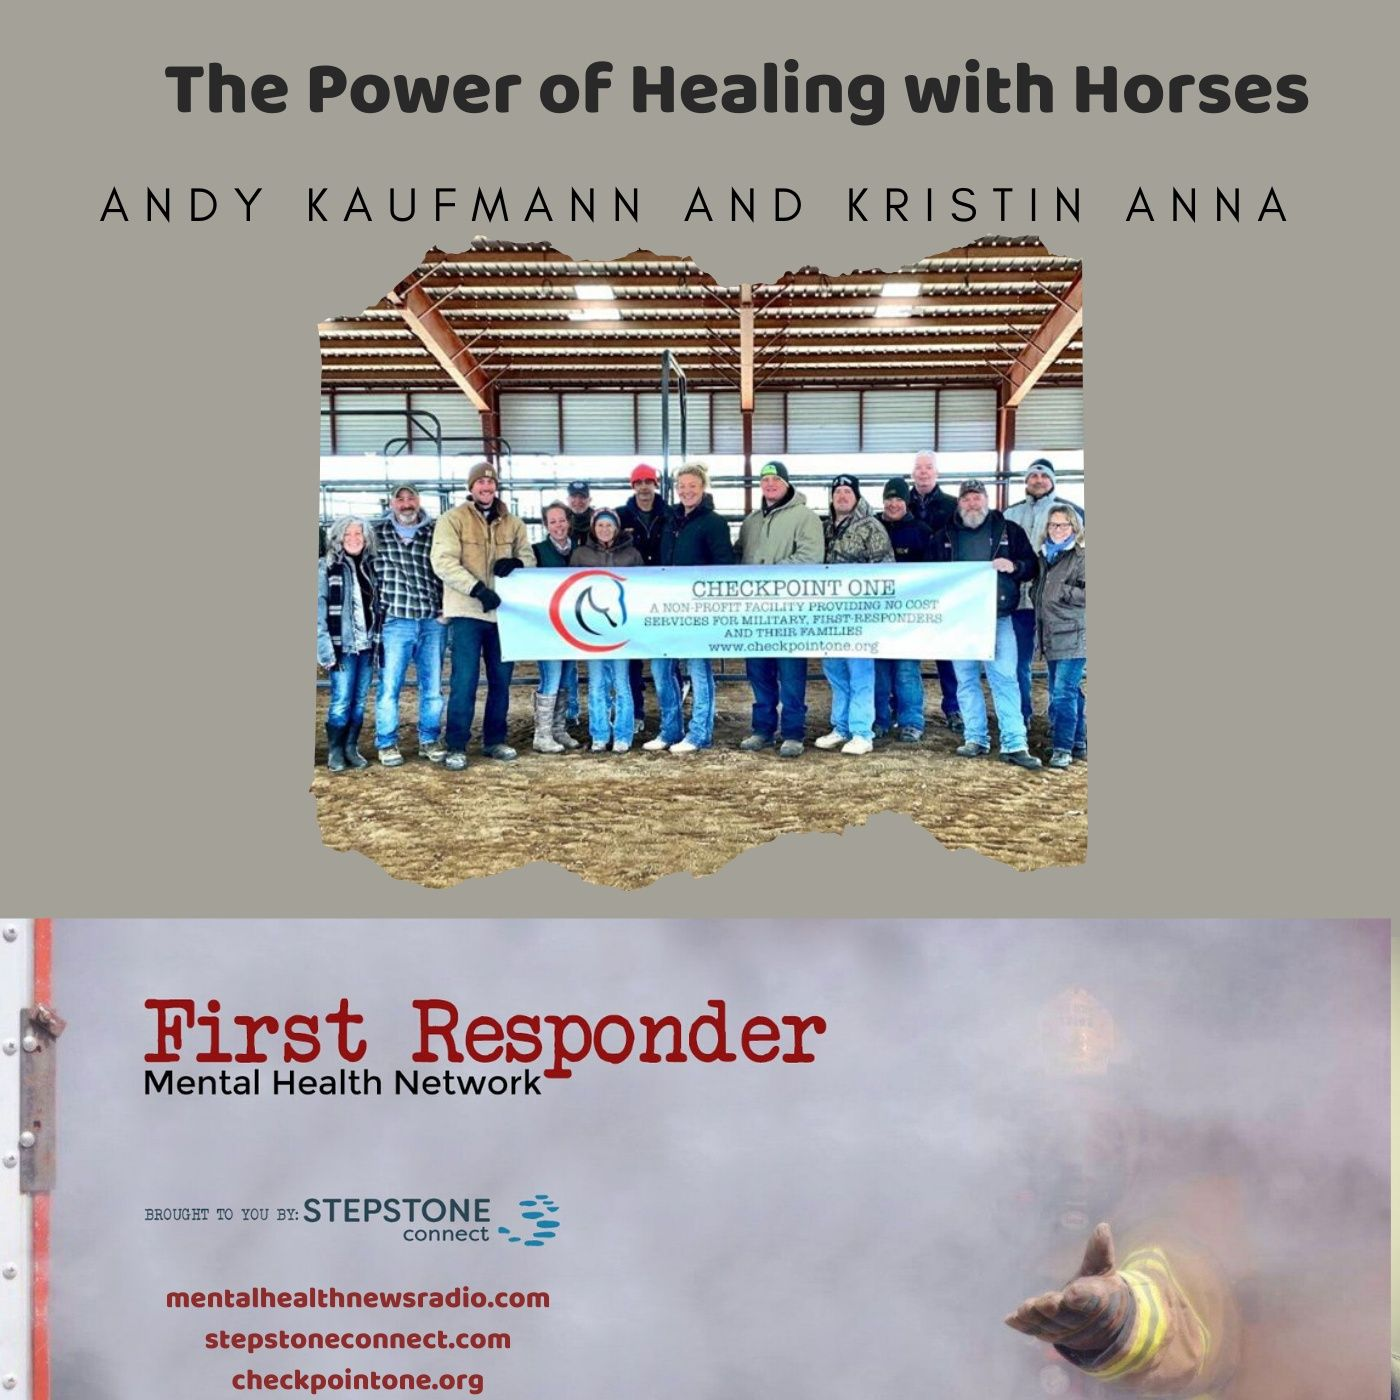 Mental Health News Radio - The Power of Healing with Horses